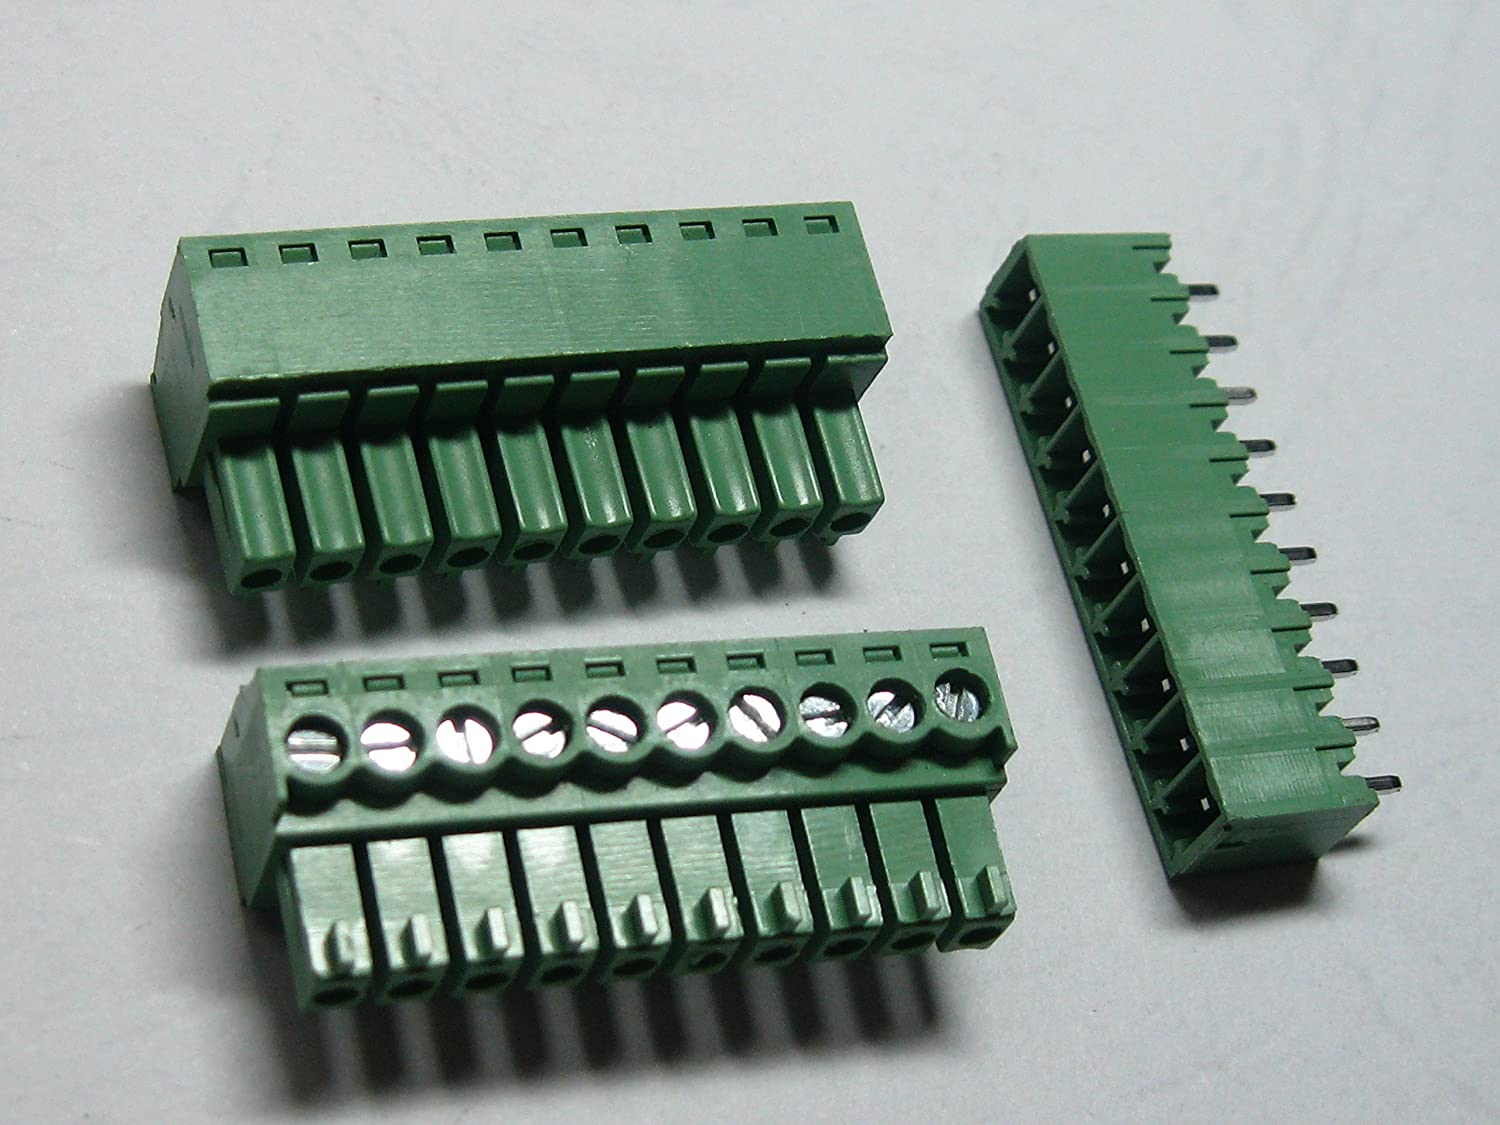 40 pcs straight-pin 10pin/way Pitch 3.81mm Screw Terminal Block Connector Green Color Pluggable Type with pin